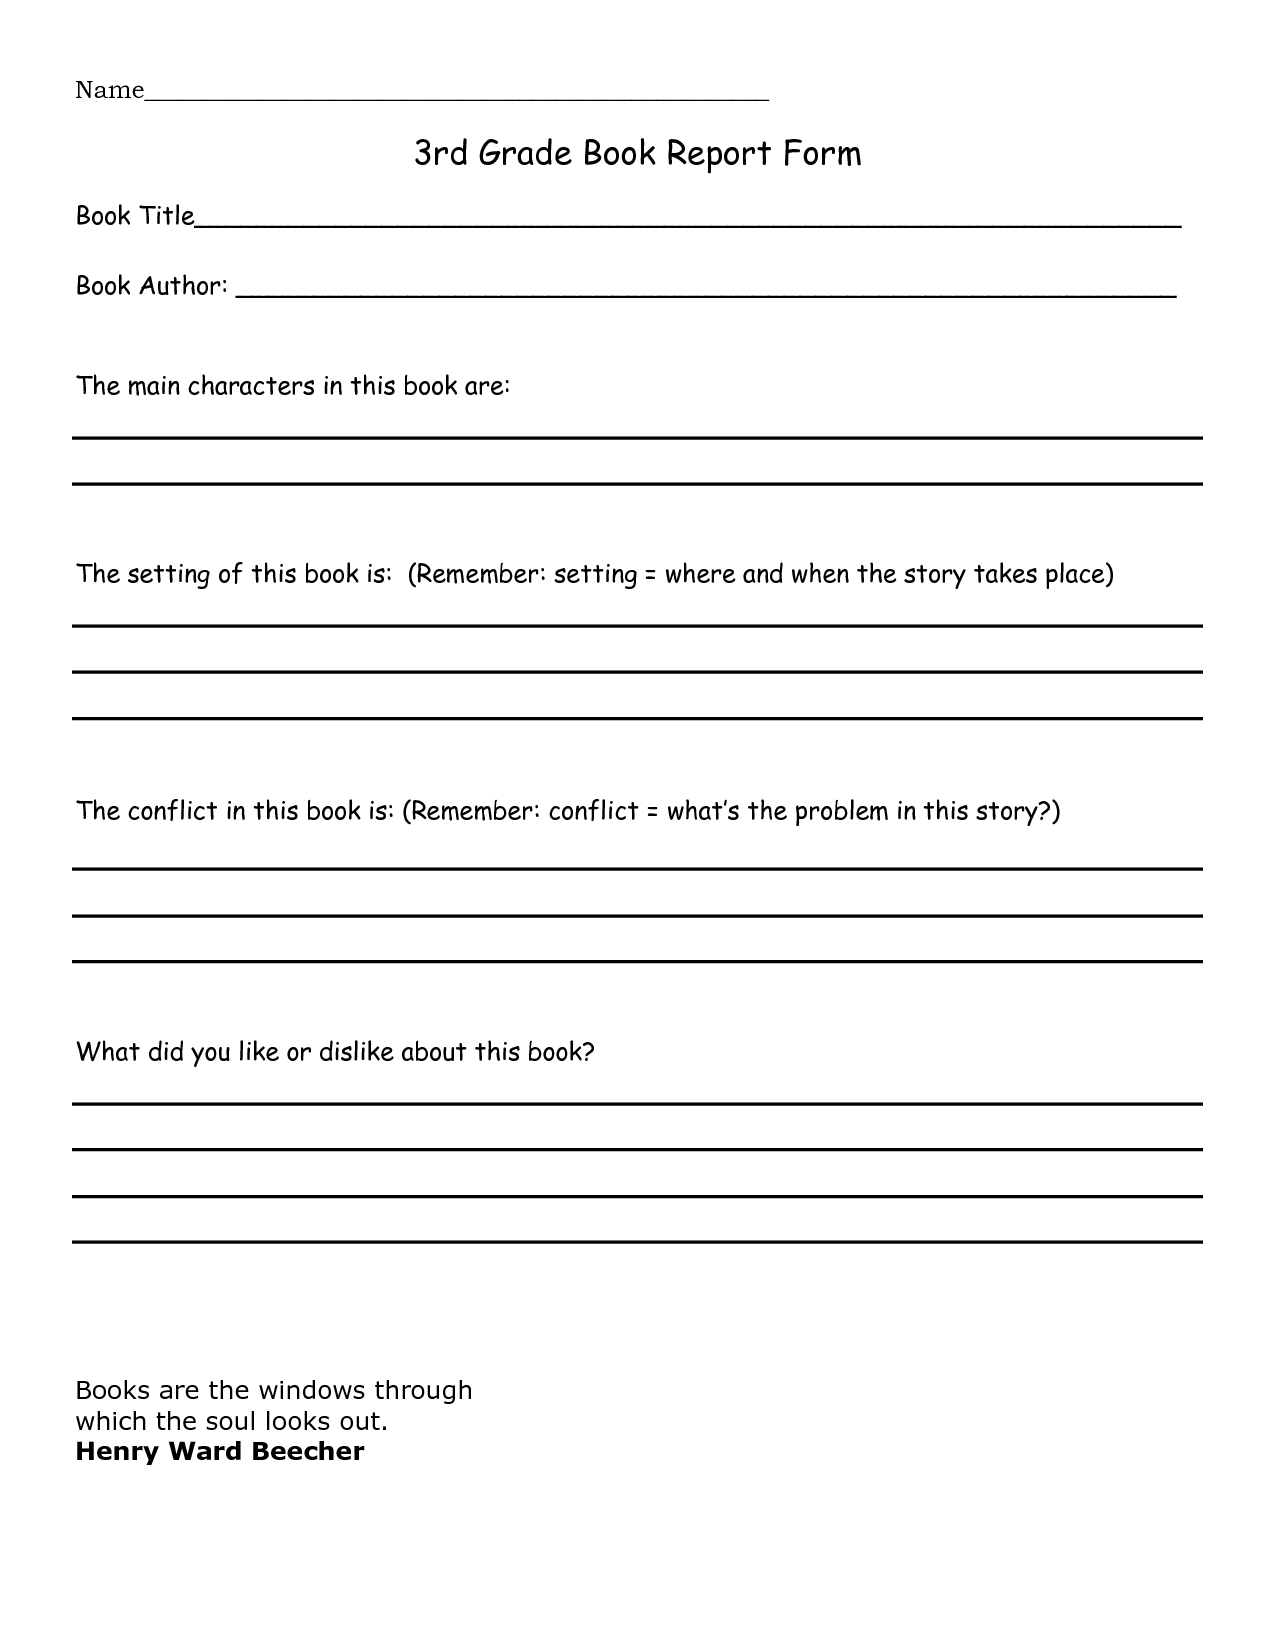 Book Report 3Rd Grade Template - Google Search | Home With Book Report Template In Spanish